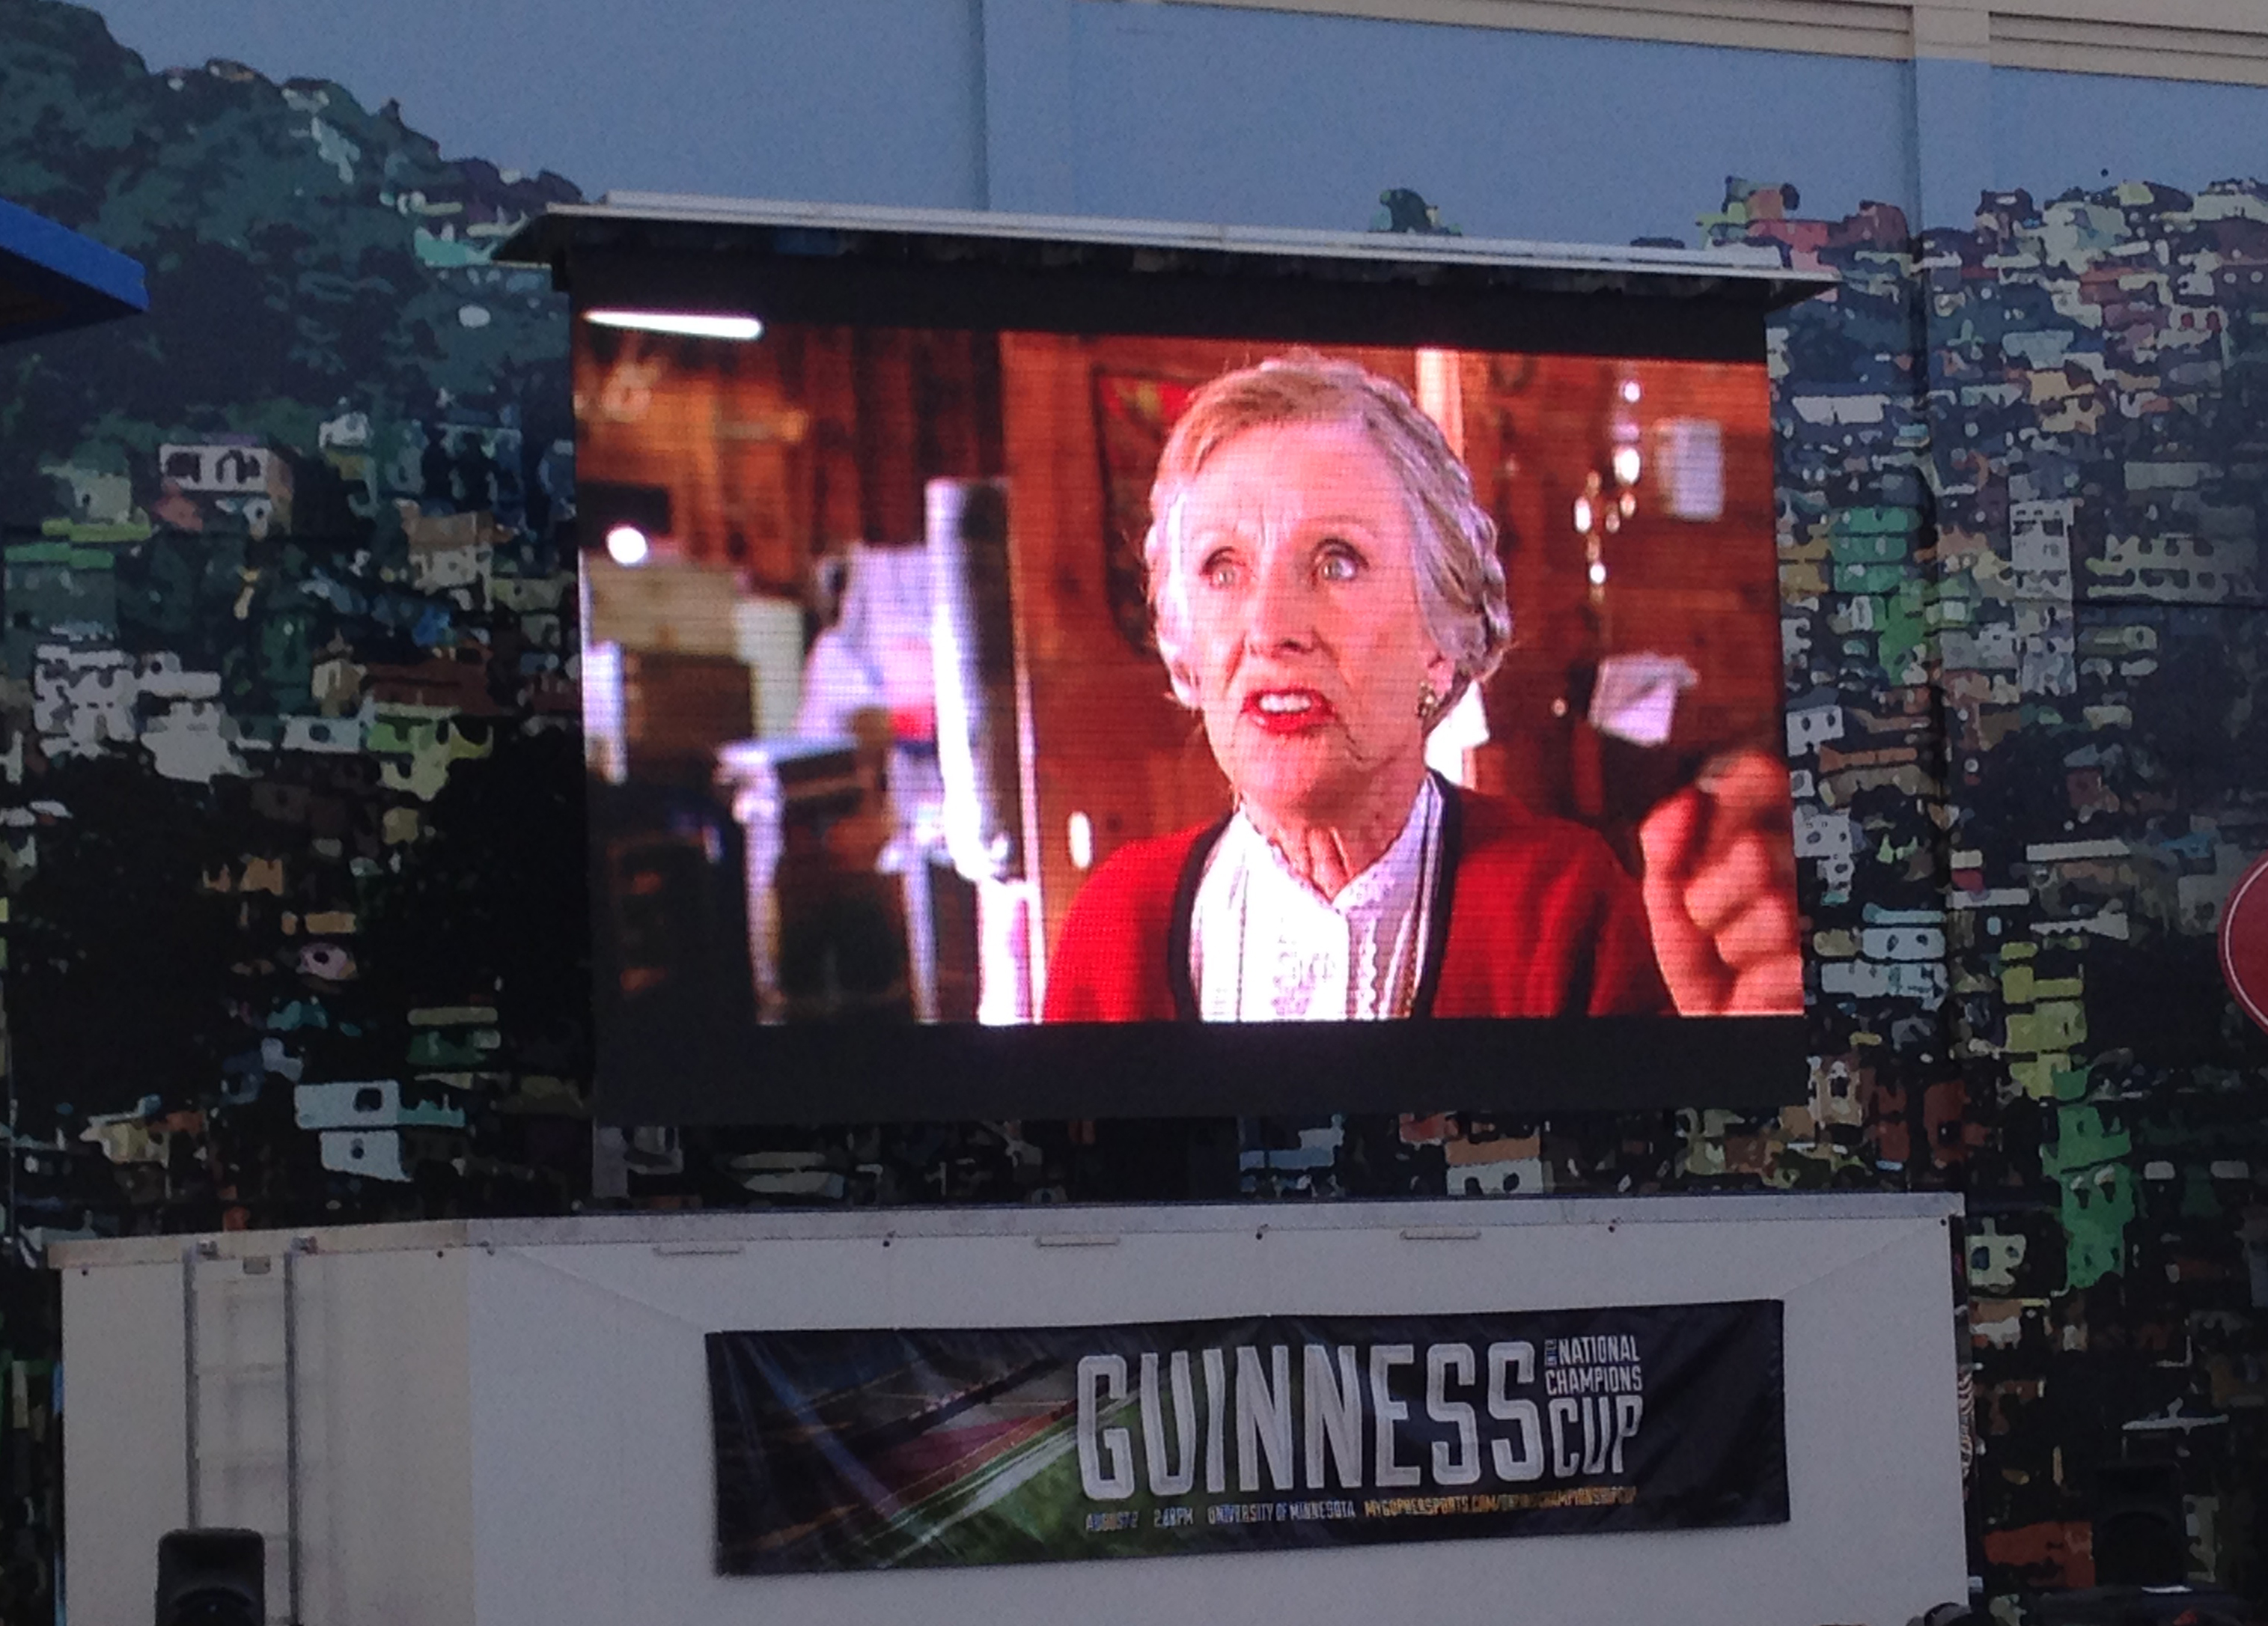 led screen rental for drive in movie night during covid-19